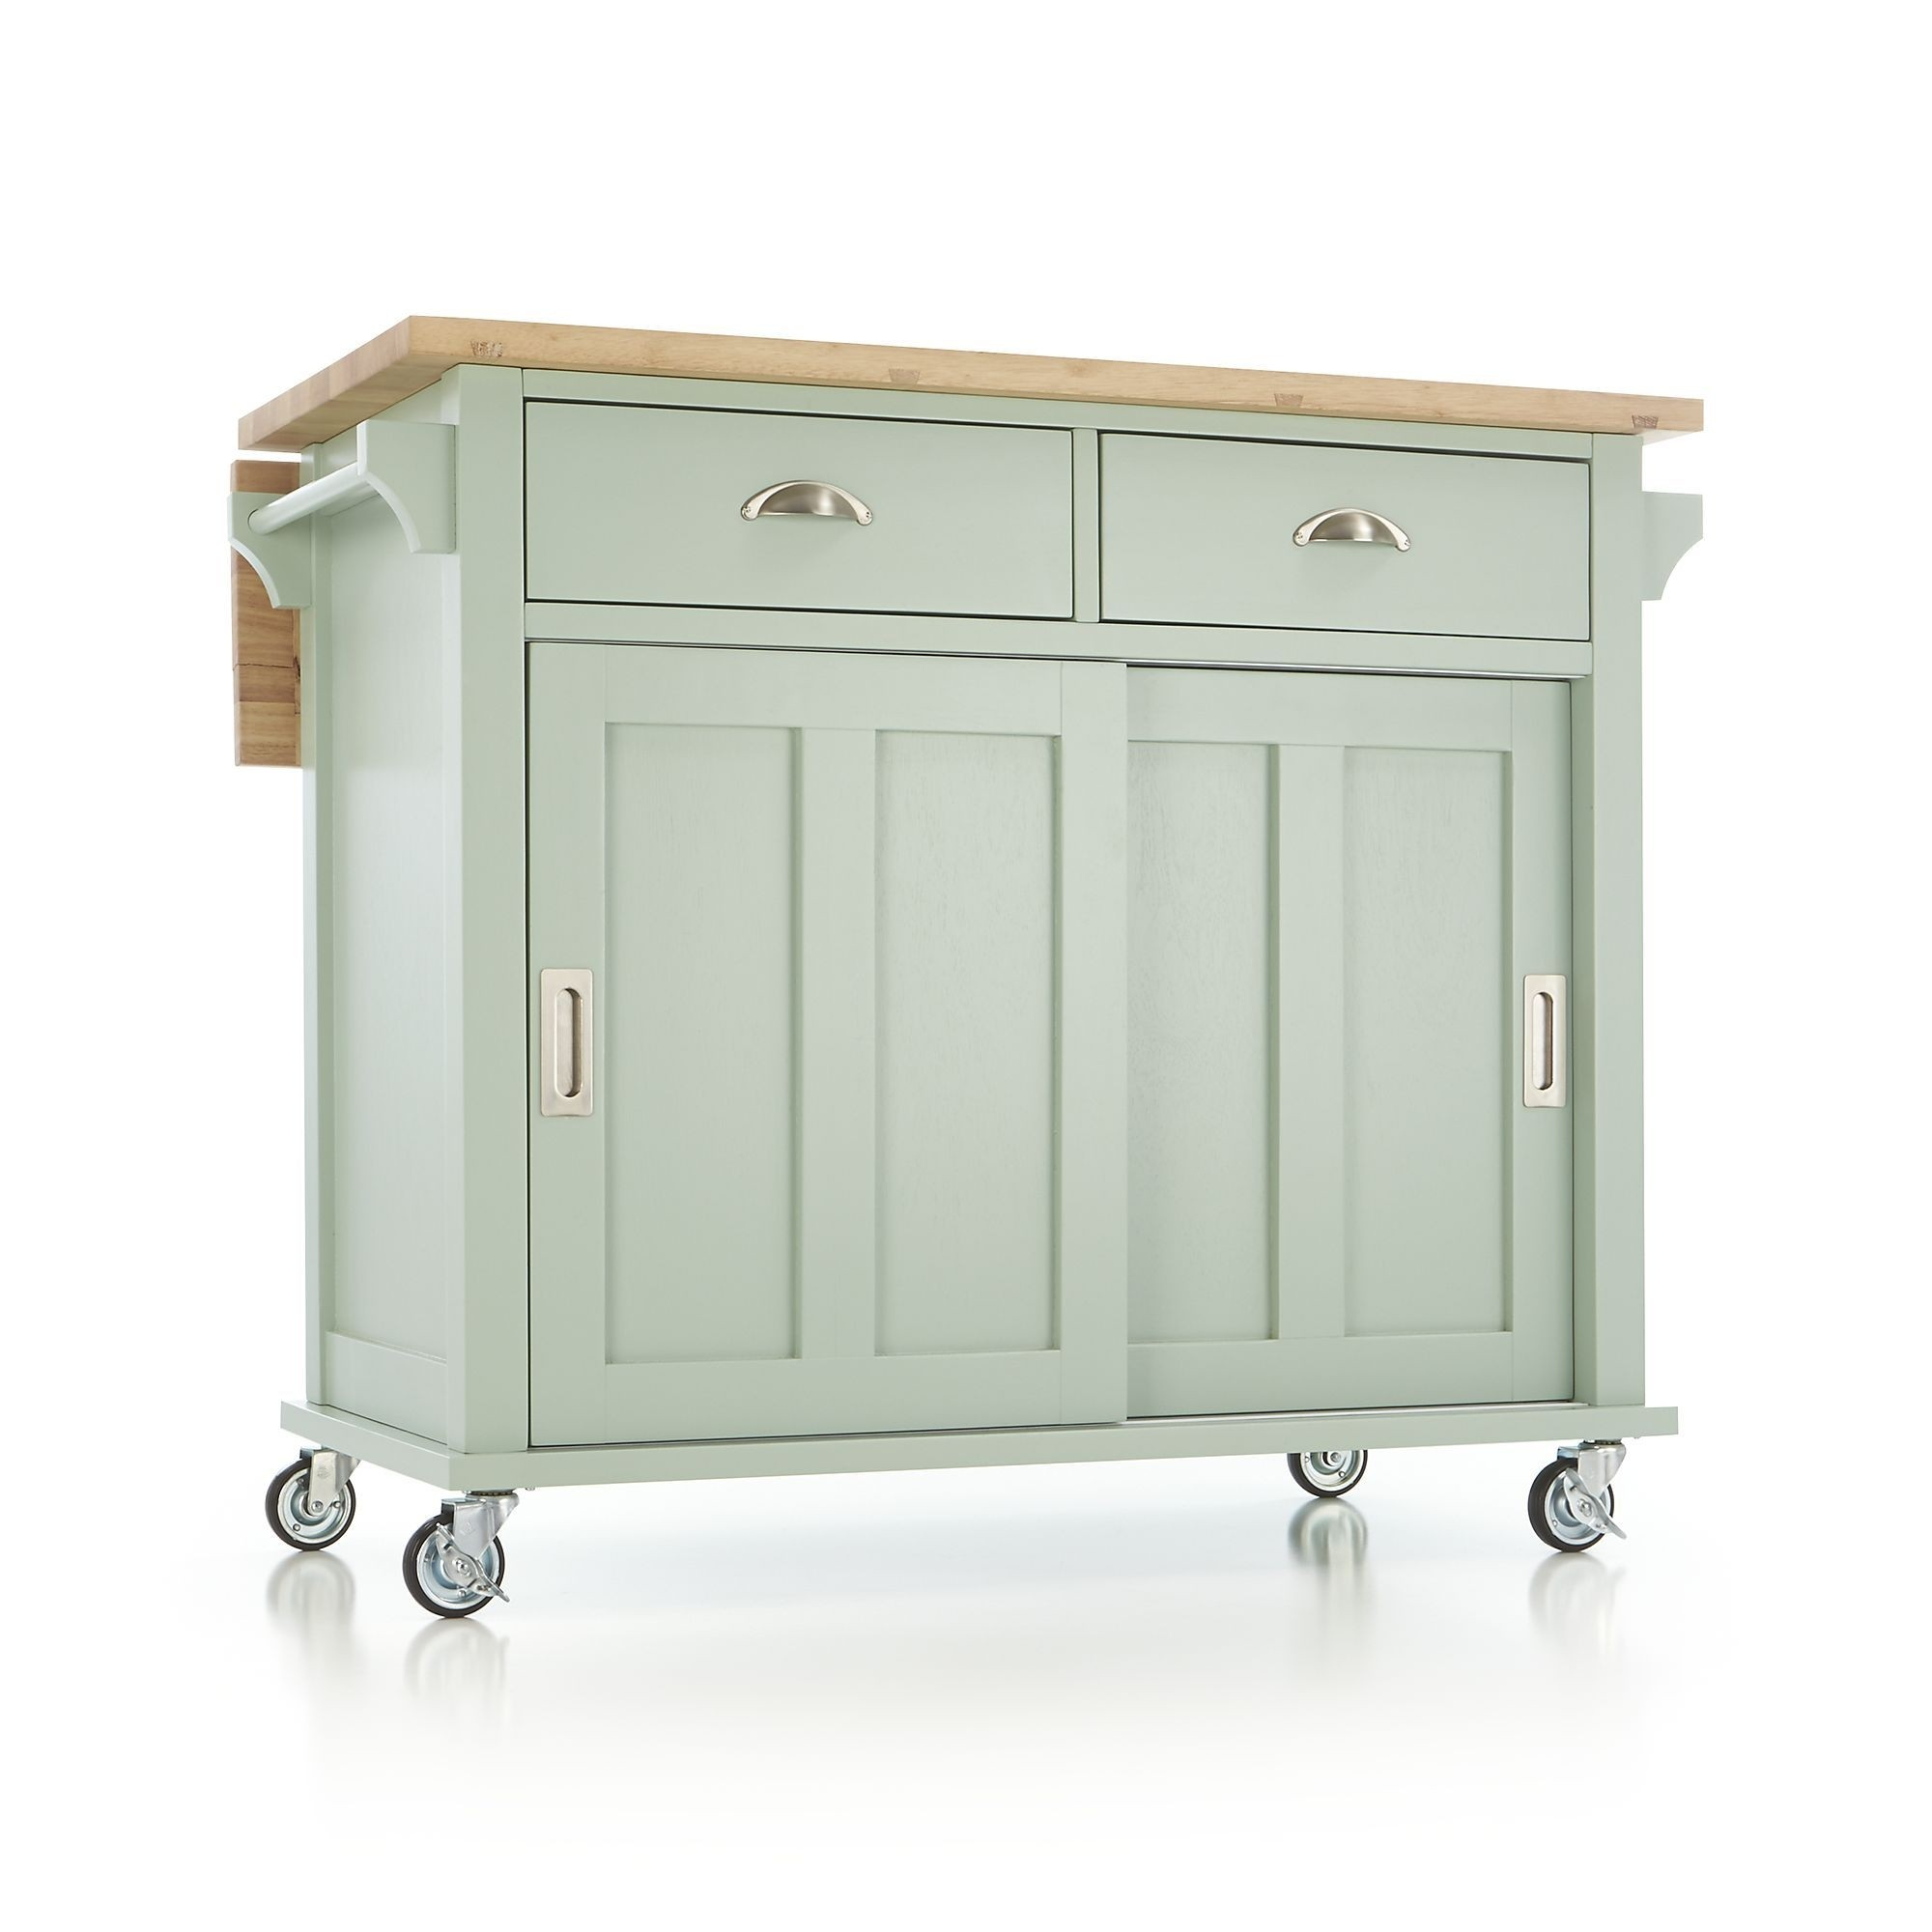 Charmant Kitchen Island On Wheels With Seating